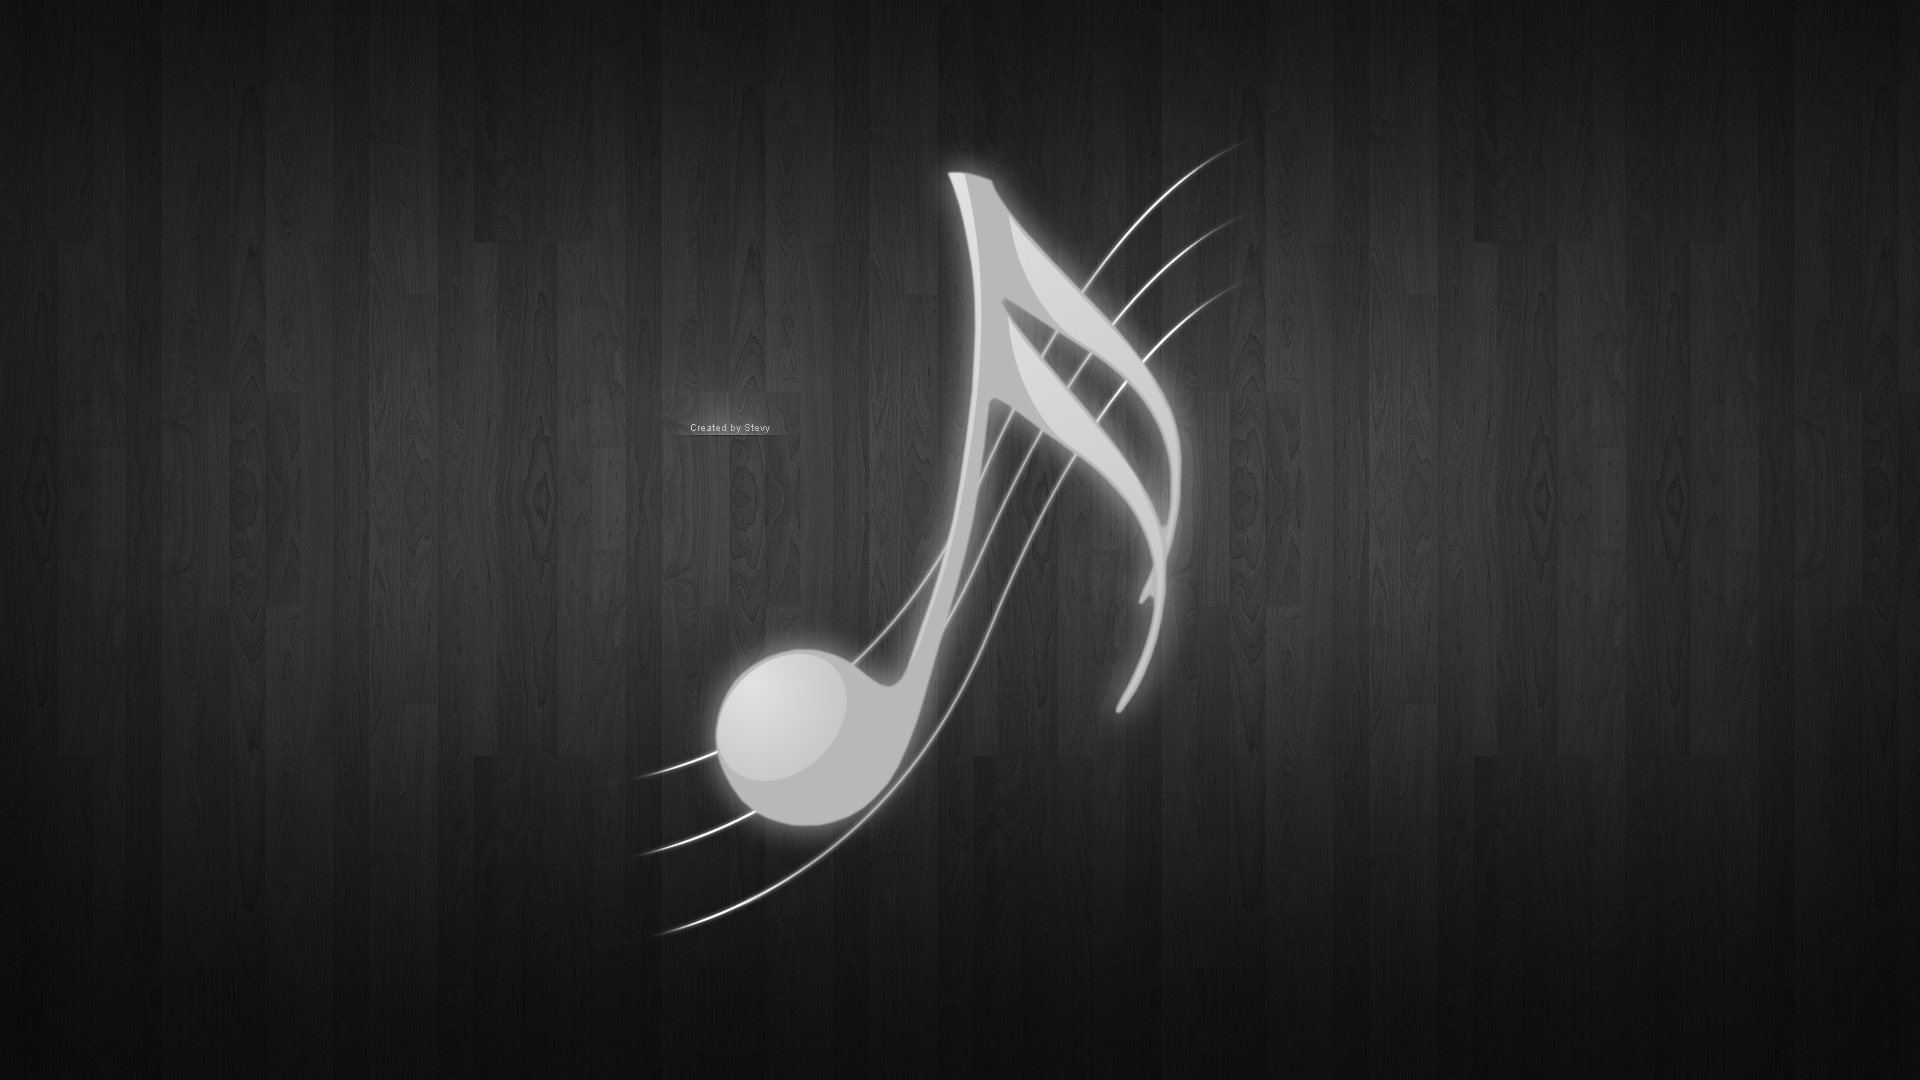 Pin By Shilpa Rana On The World Of Music Music Notes Music Wallpaper Music Notes Background